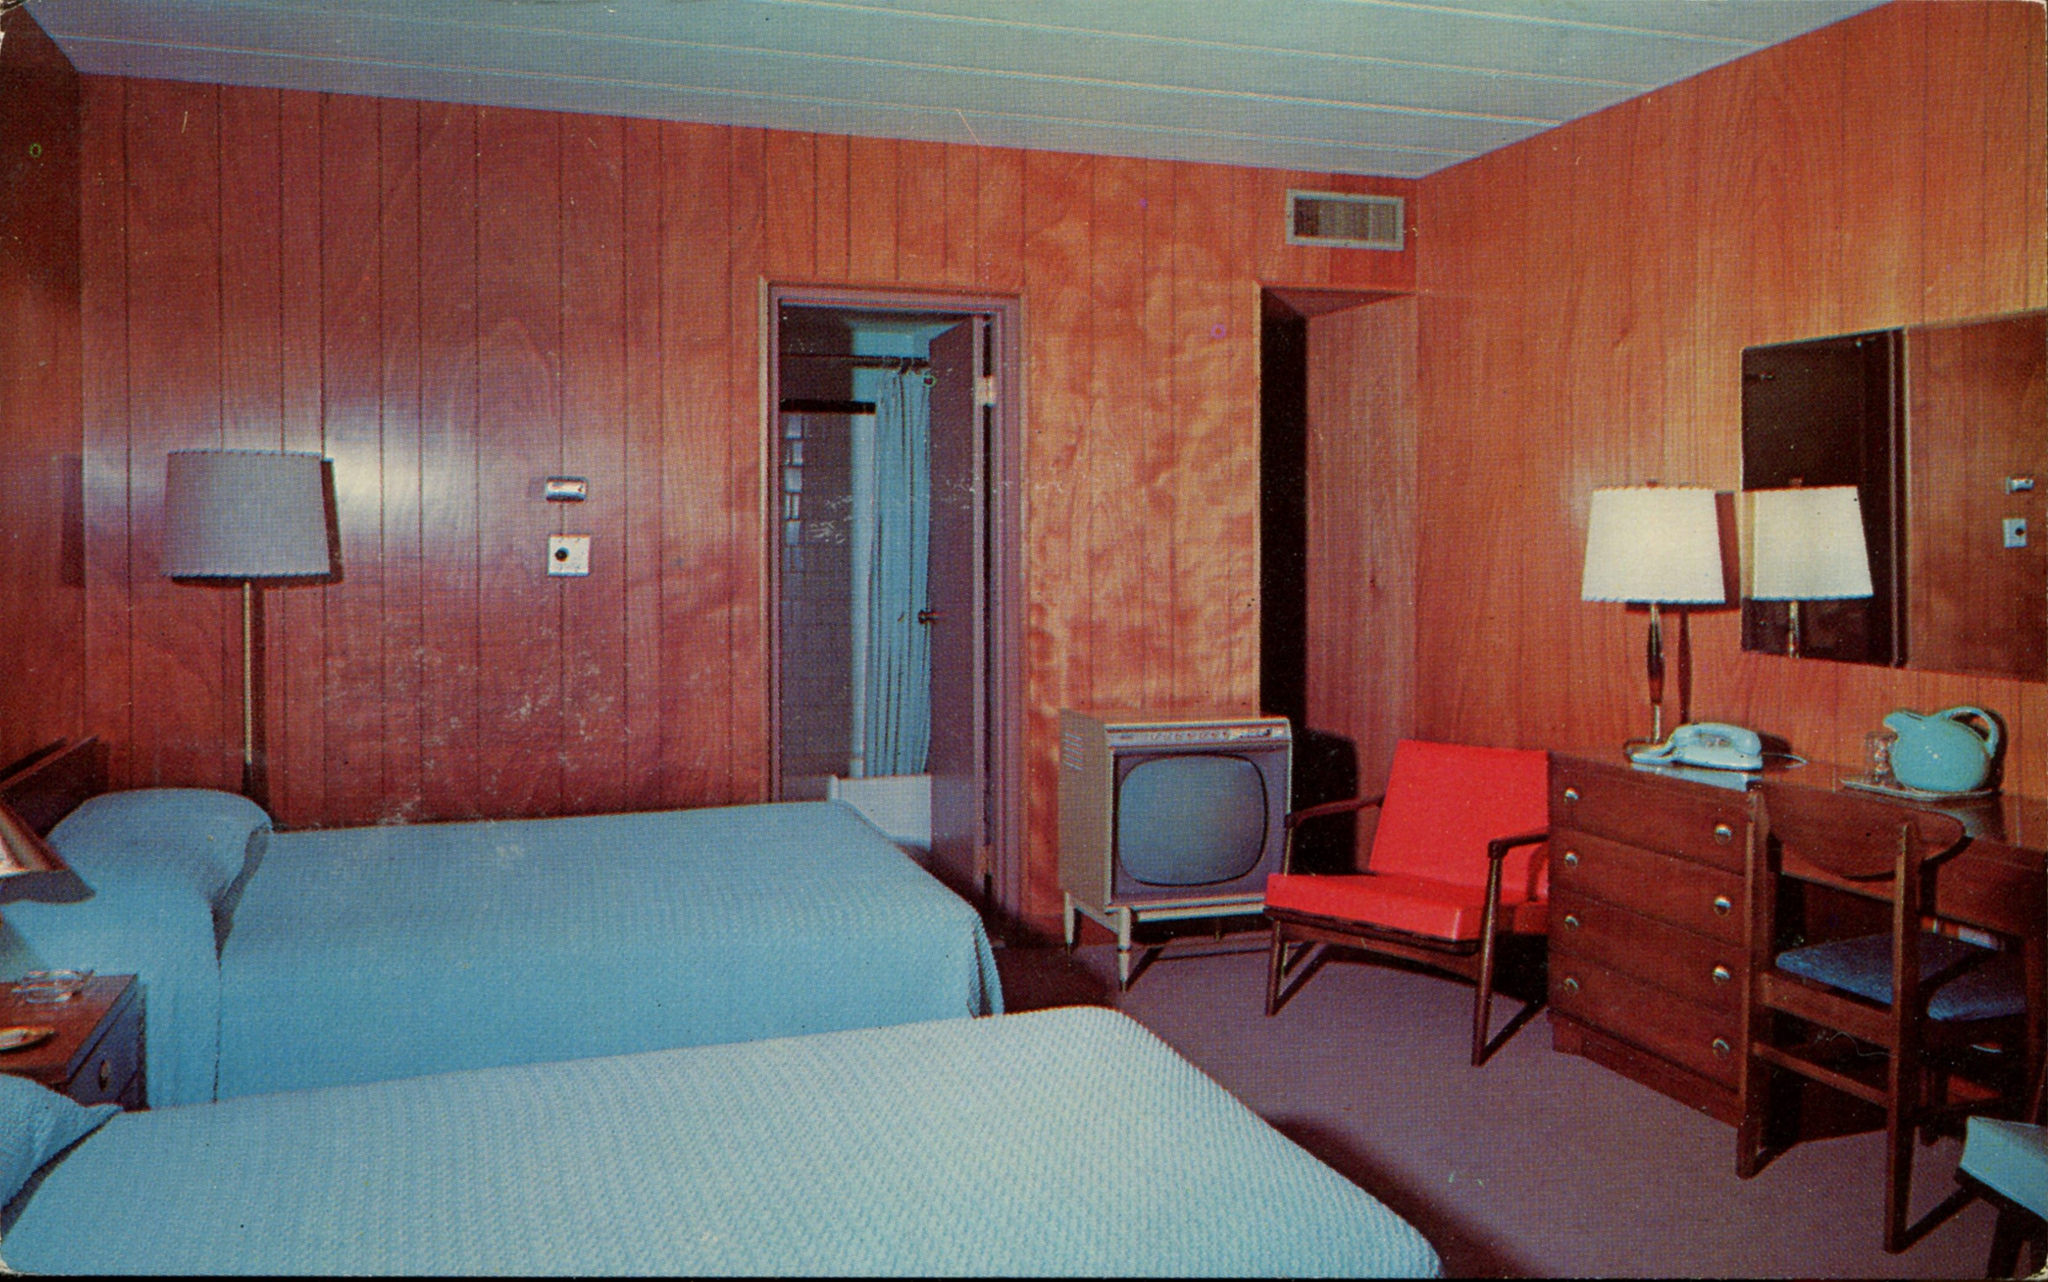 Postcards of MidCentury Motel Rooms With Style  Flashbak